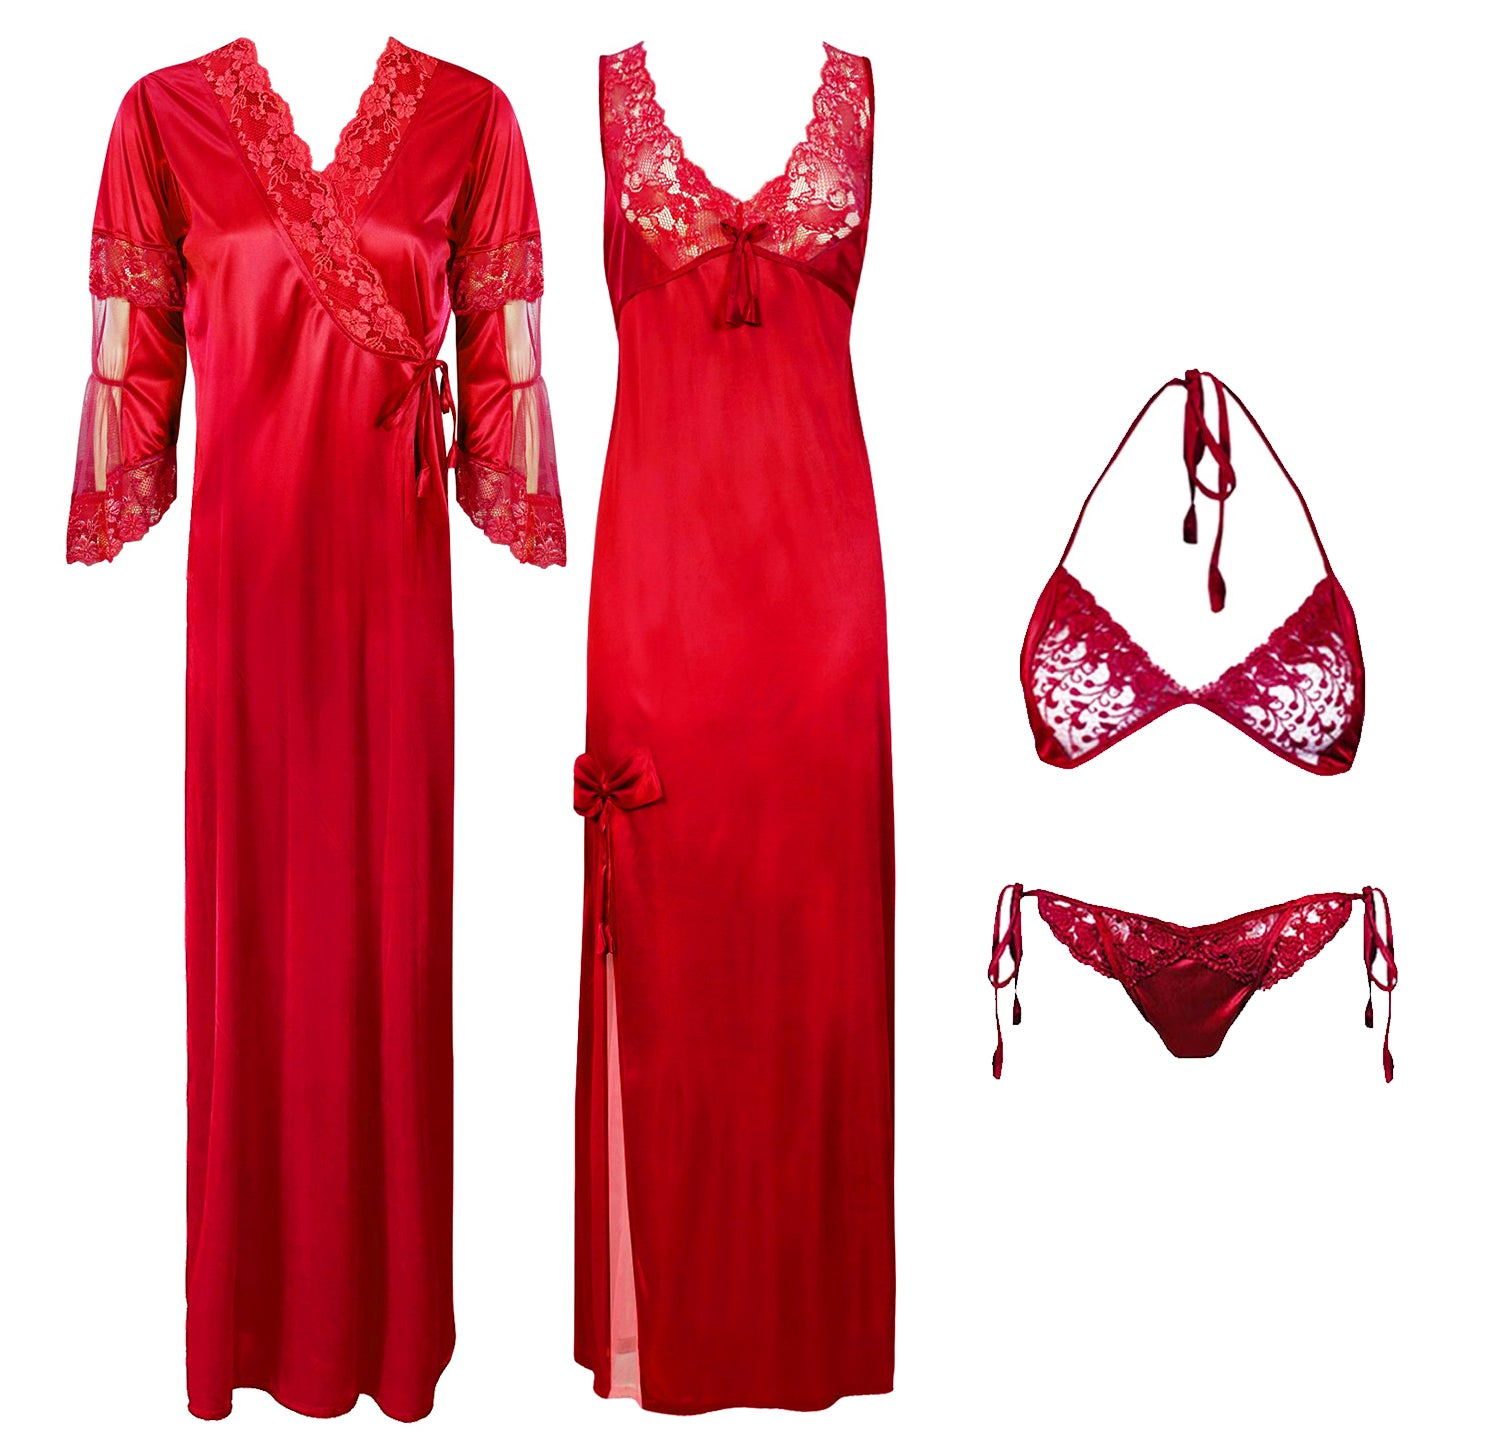 Designer Satin Nighty with Long Sleeve Robe 4 Pcs Set [colour]- Hautie UK, #Nightfashion | #Underfashion